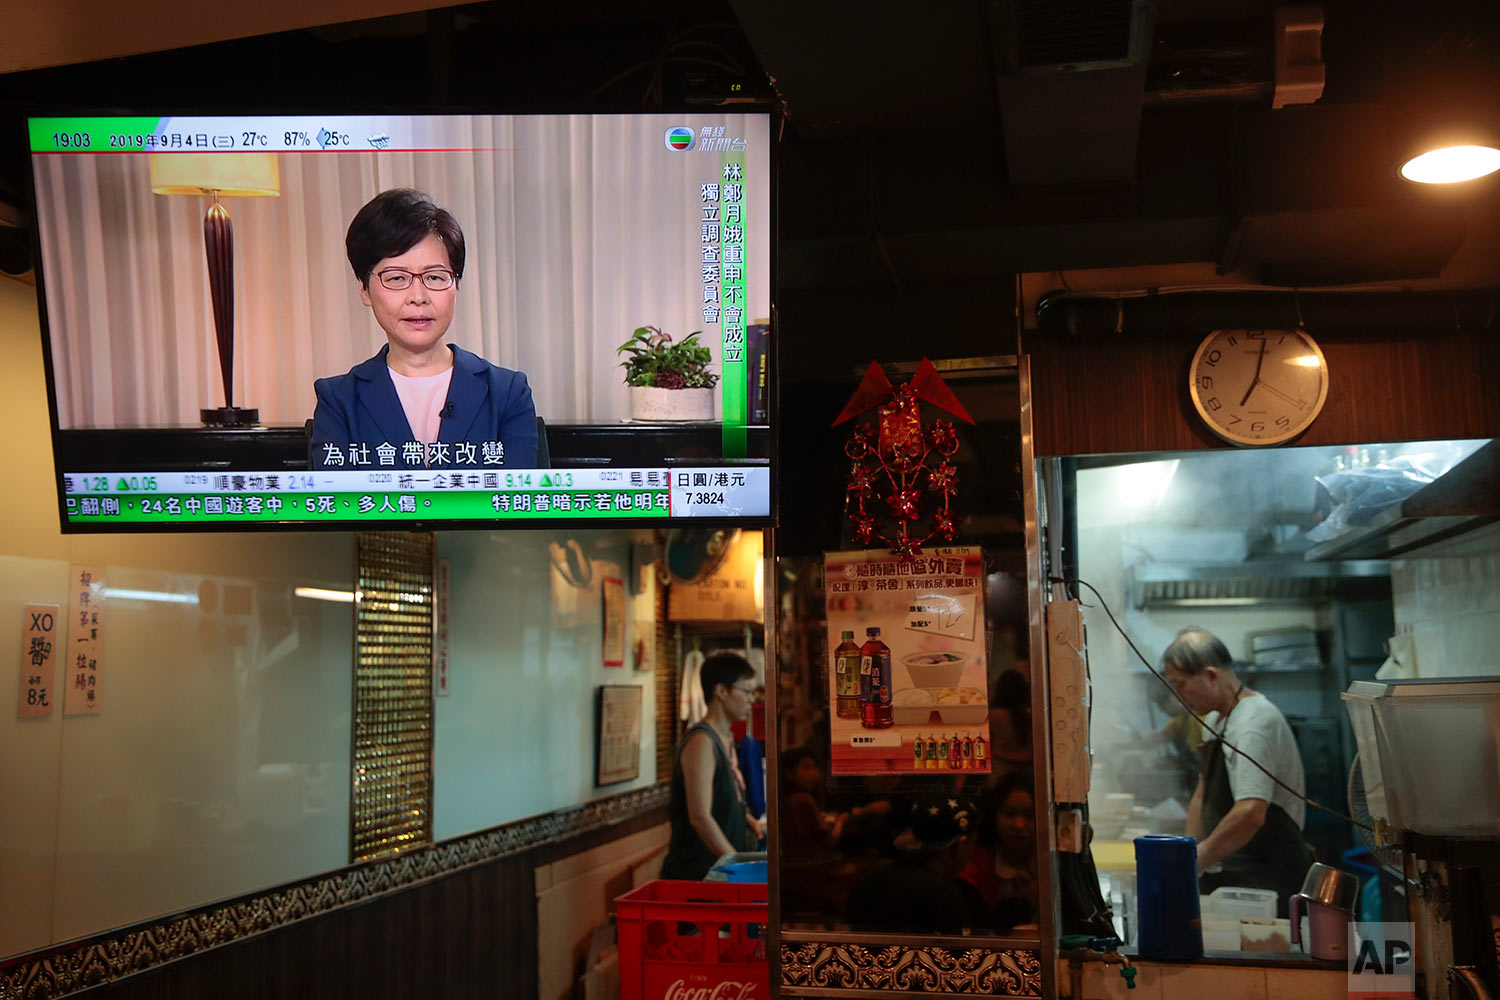 Hong Kong Chief Executive Carrie Lam makes an announcement on an extradition bill in television message, seen at a restaurant in Hong Kong, Sept. 4, 2019. (AP Photo/Jae C. Hong)